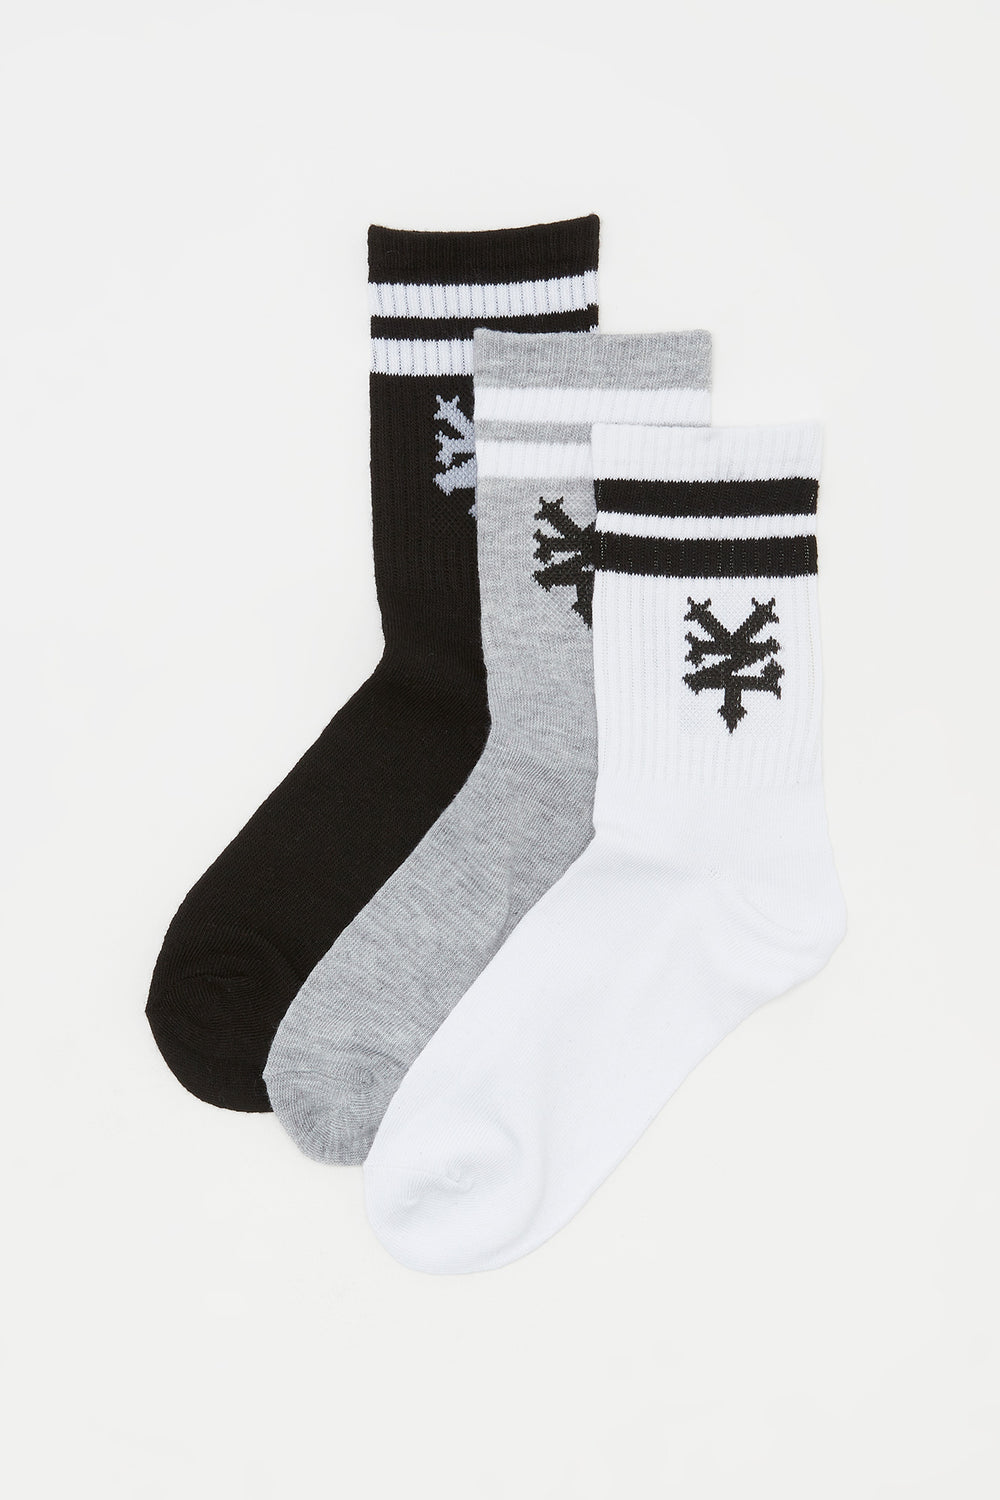 Zoo York Mens Striped Crew Socks (3 Pairs) Black with White